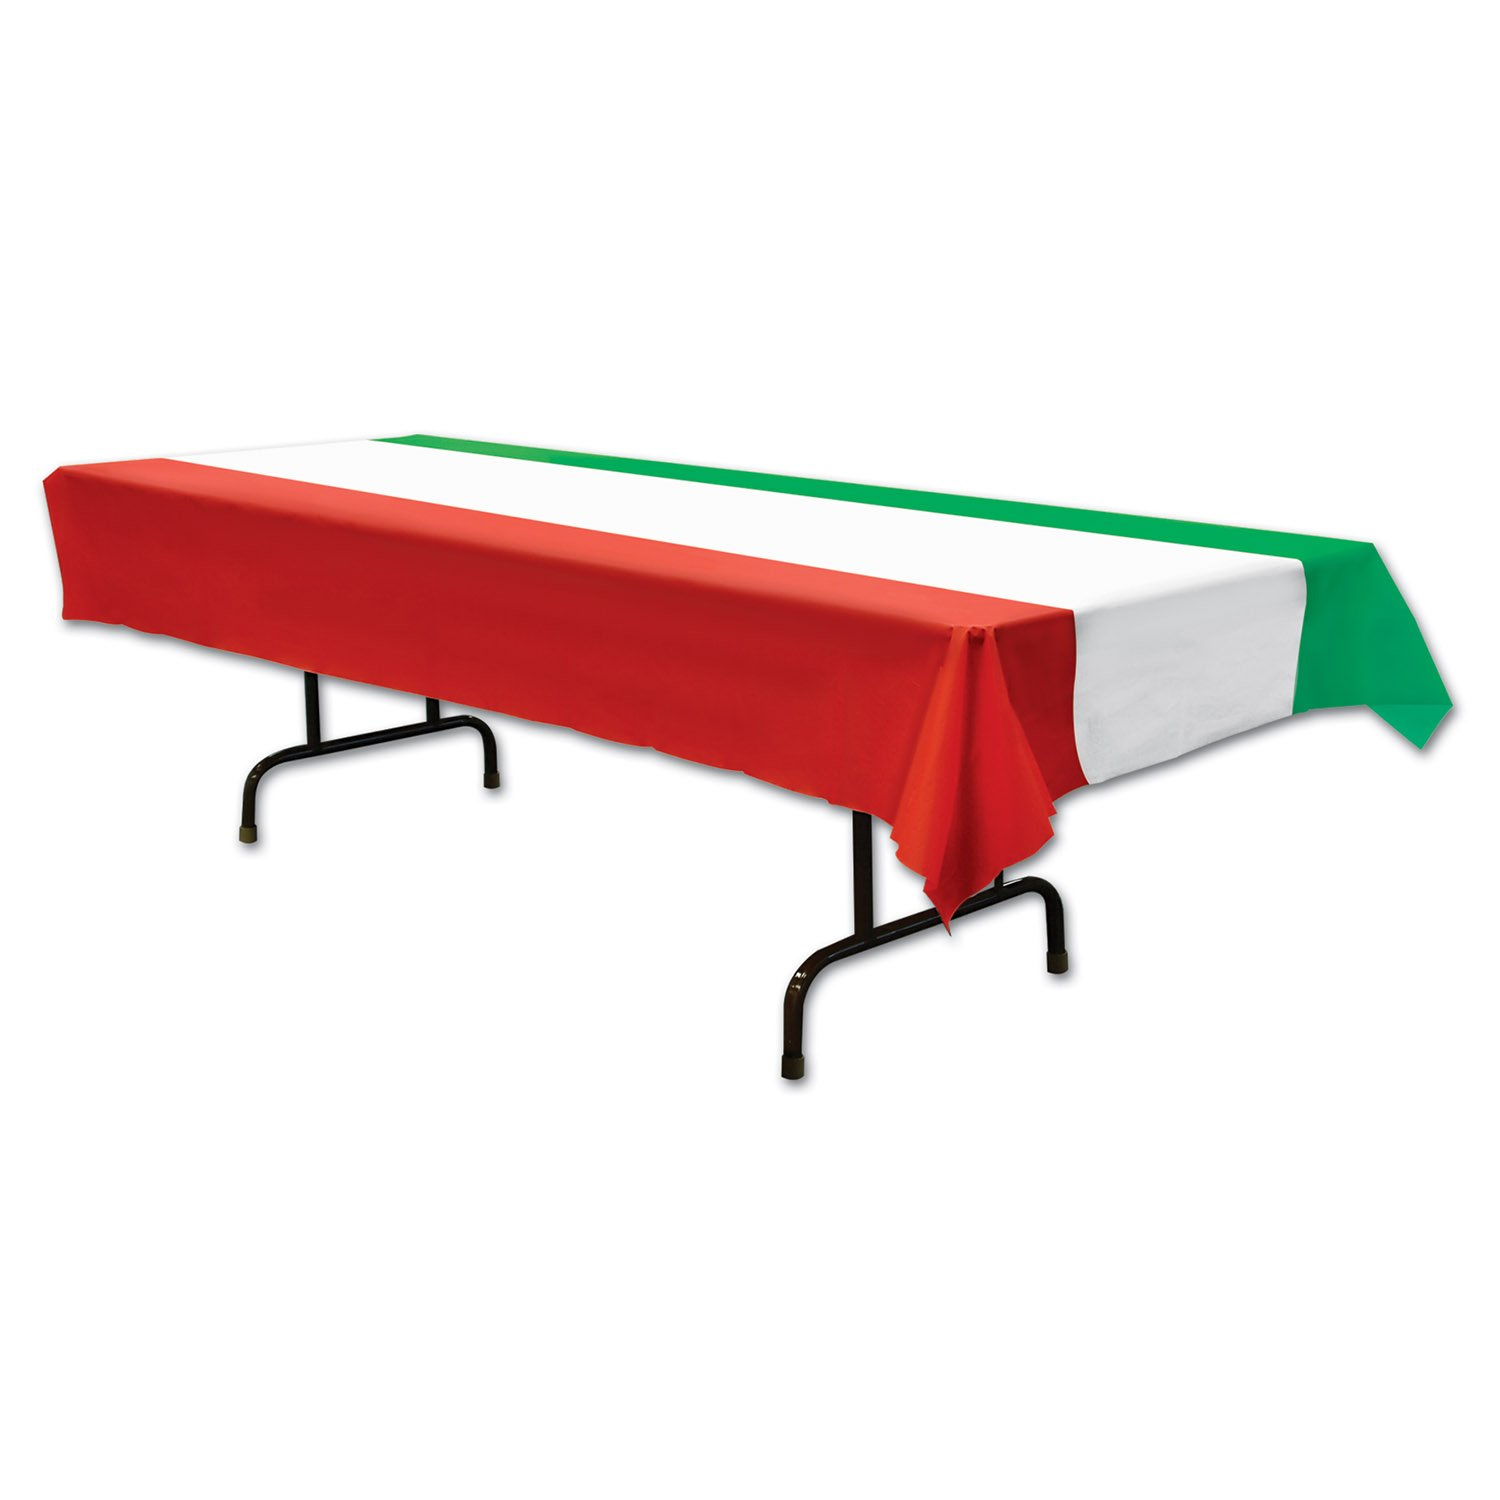 Int'l Table Cover (Pack of 3)